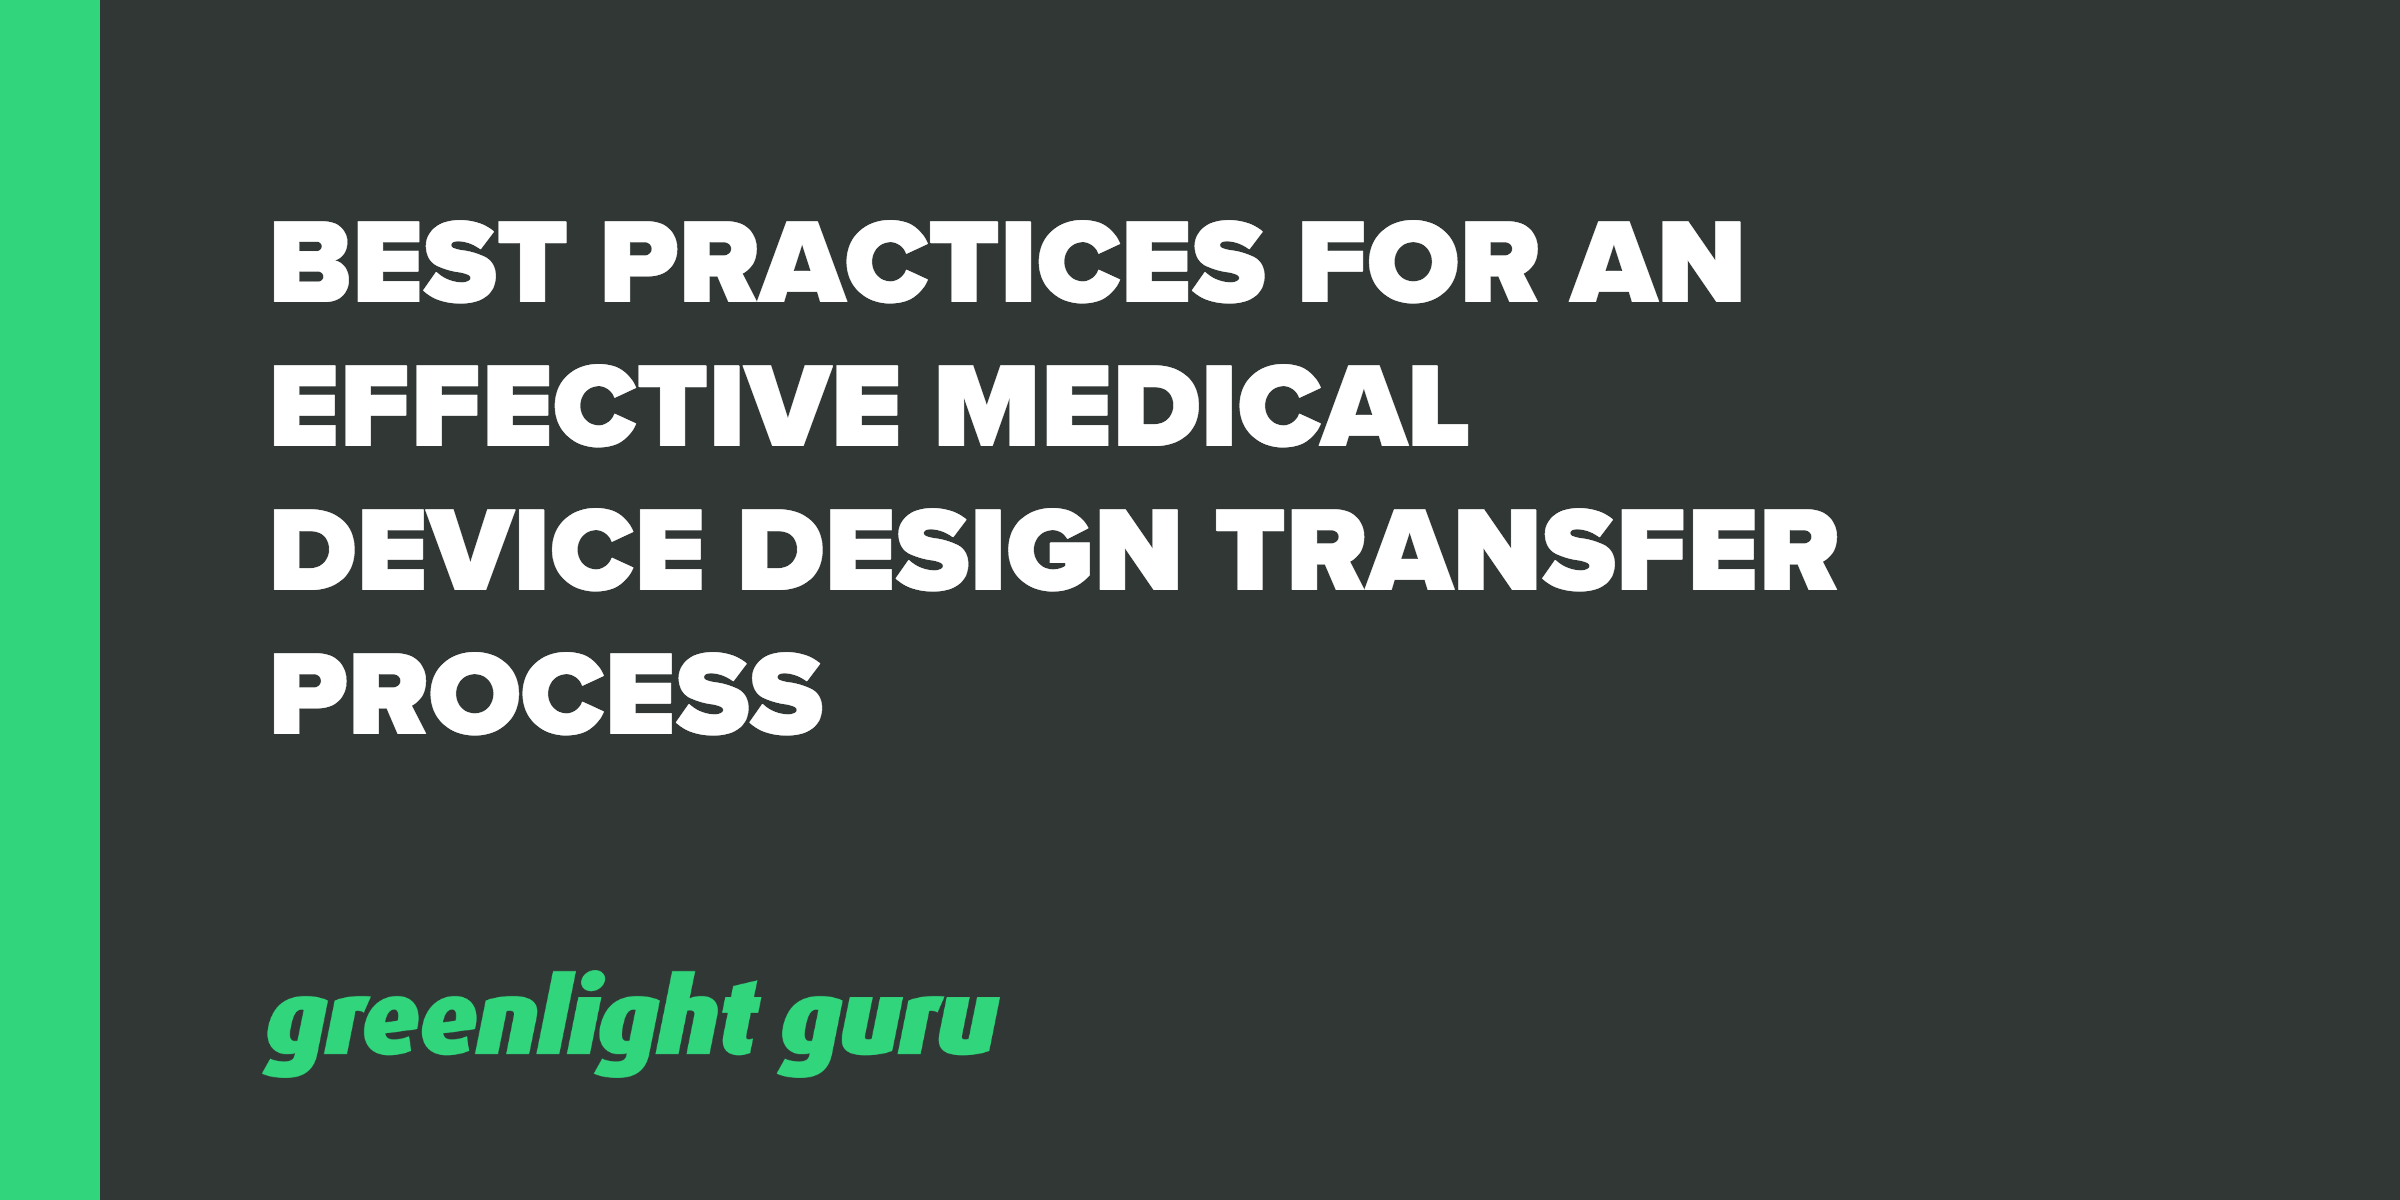 BEST PRACTICES FOR AN EFFECTIVE MEDICAL DEVICE DESIGN TRANSFER PROCESS